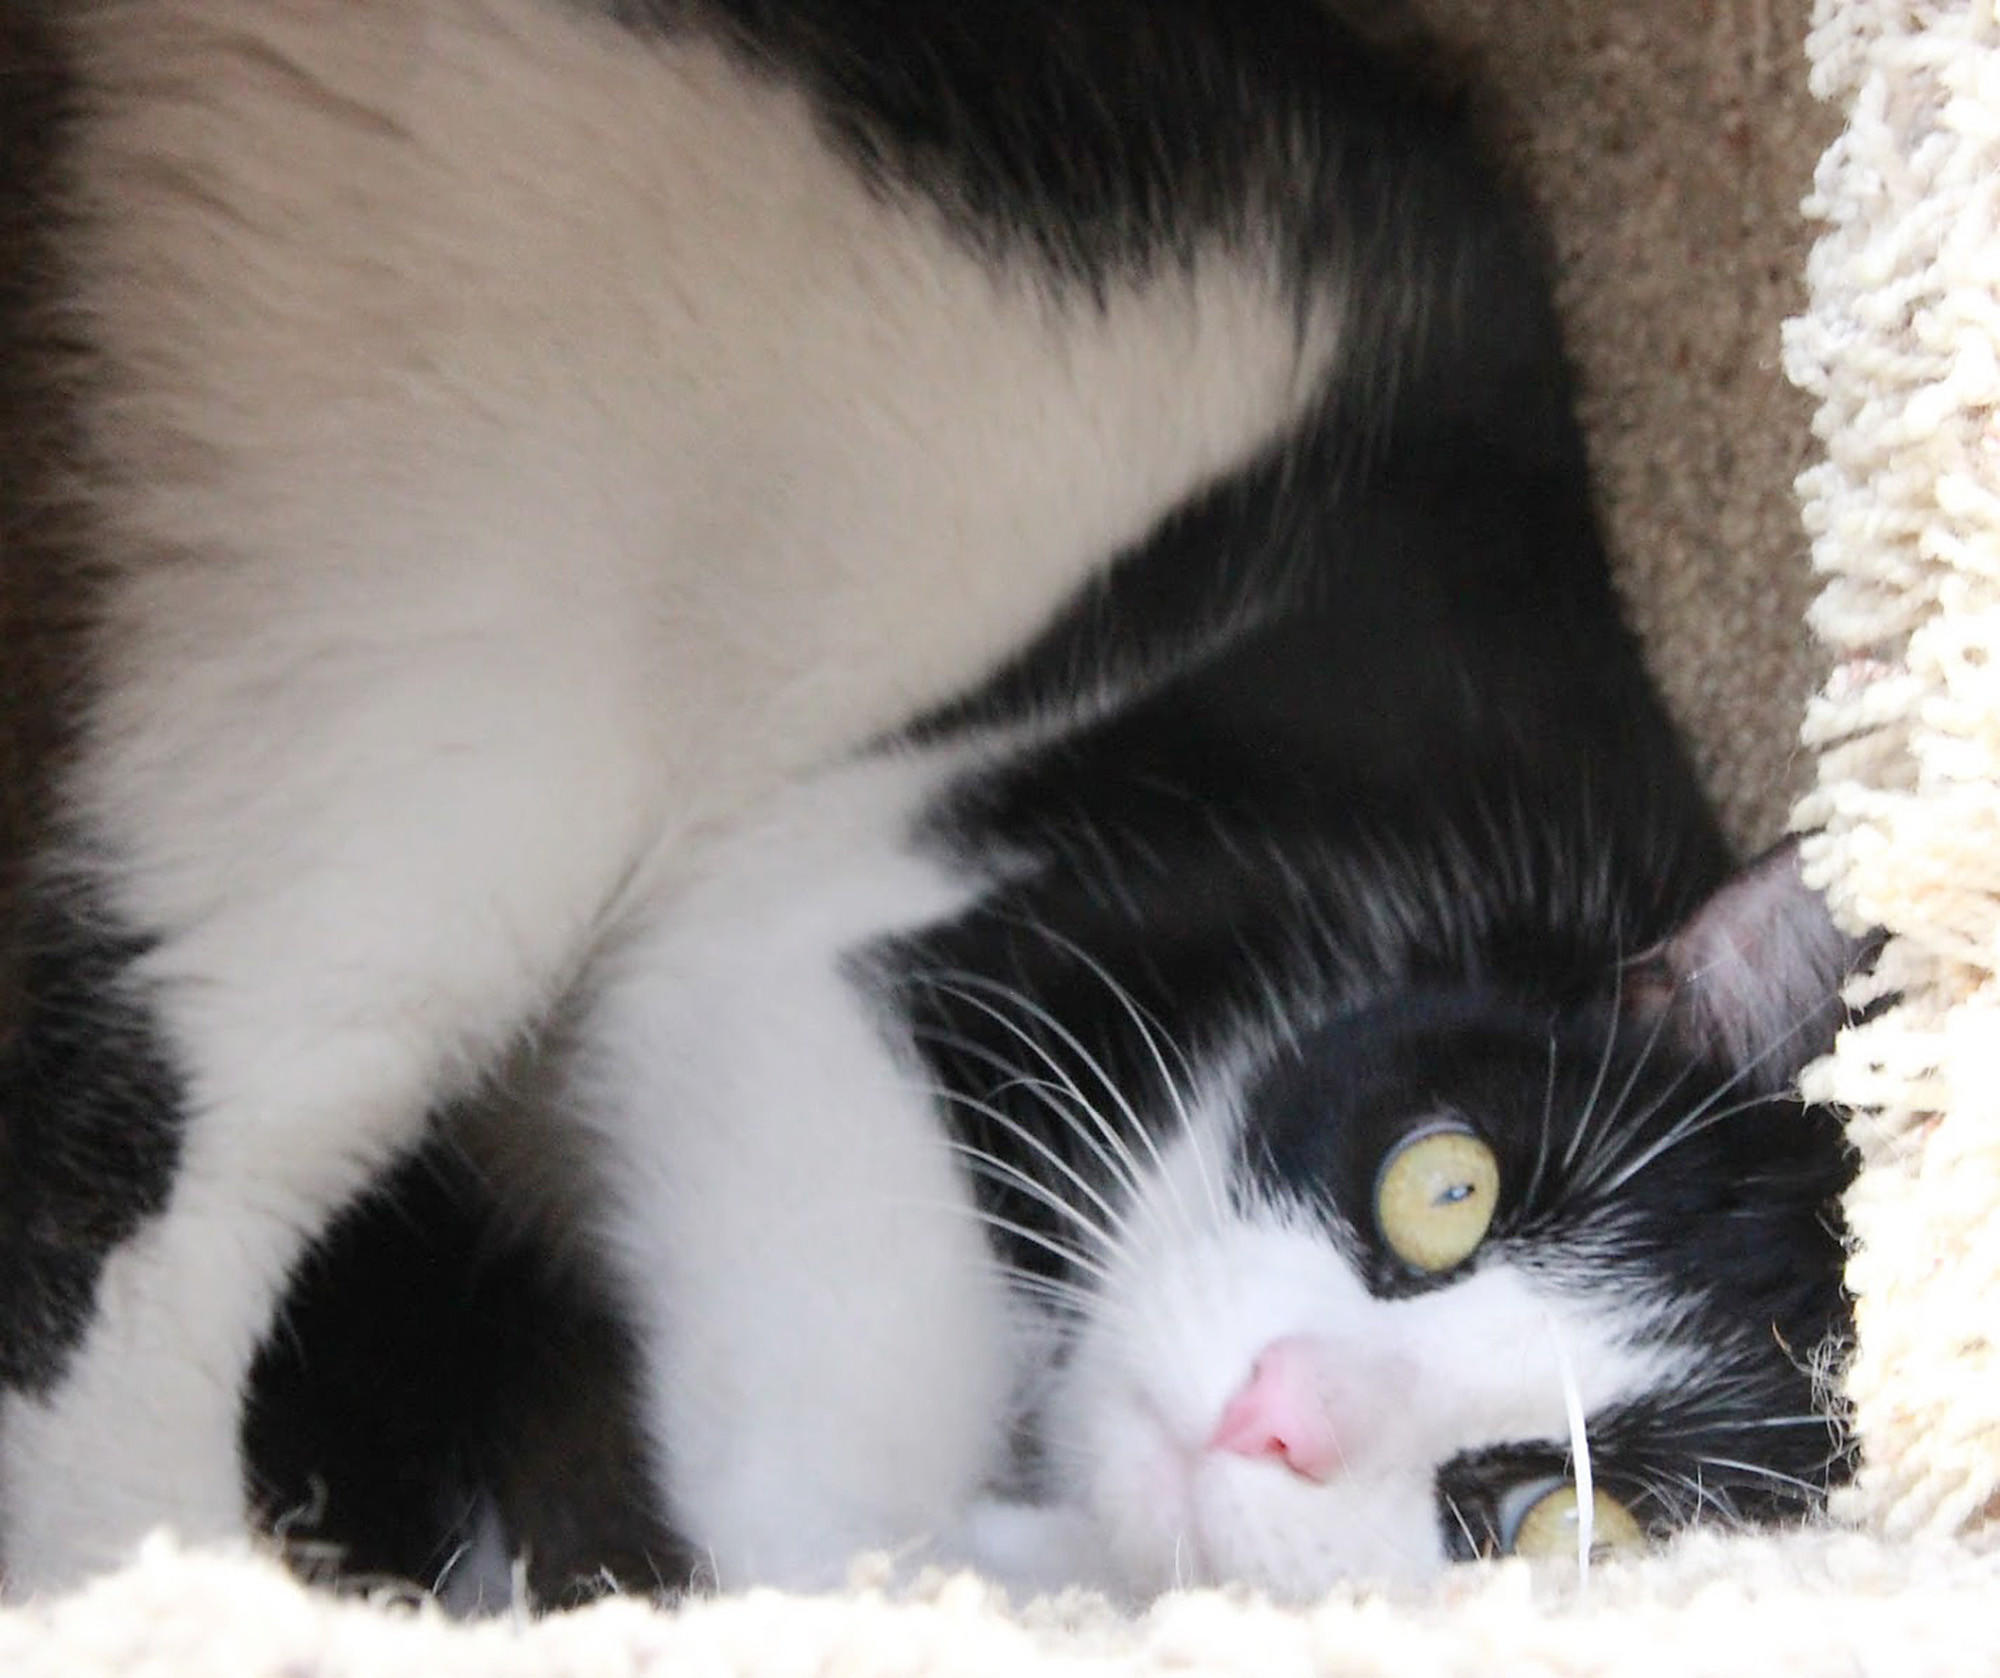 Darla is a 7-year-old black and white cat up for adoption by the Burbank Animal Shelter.